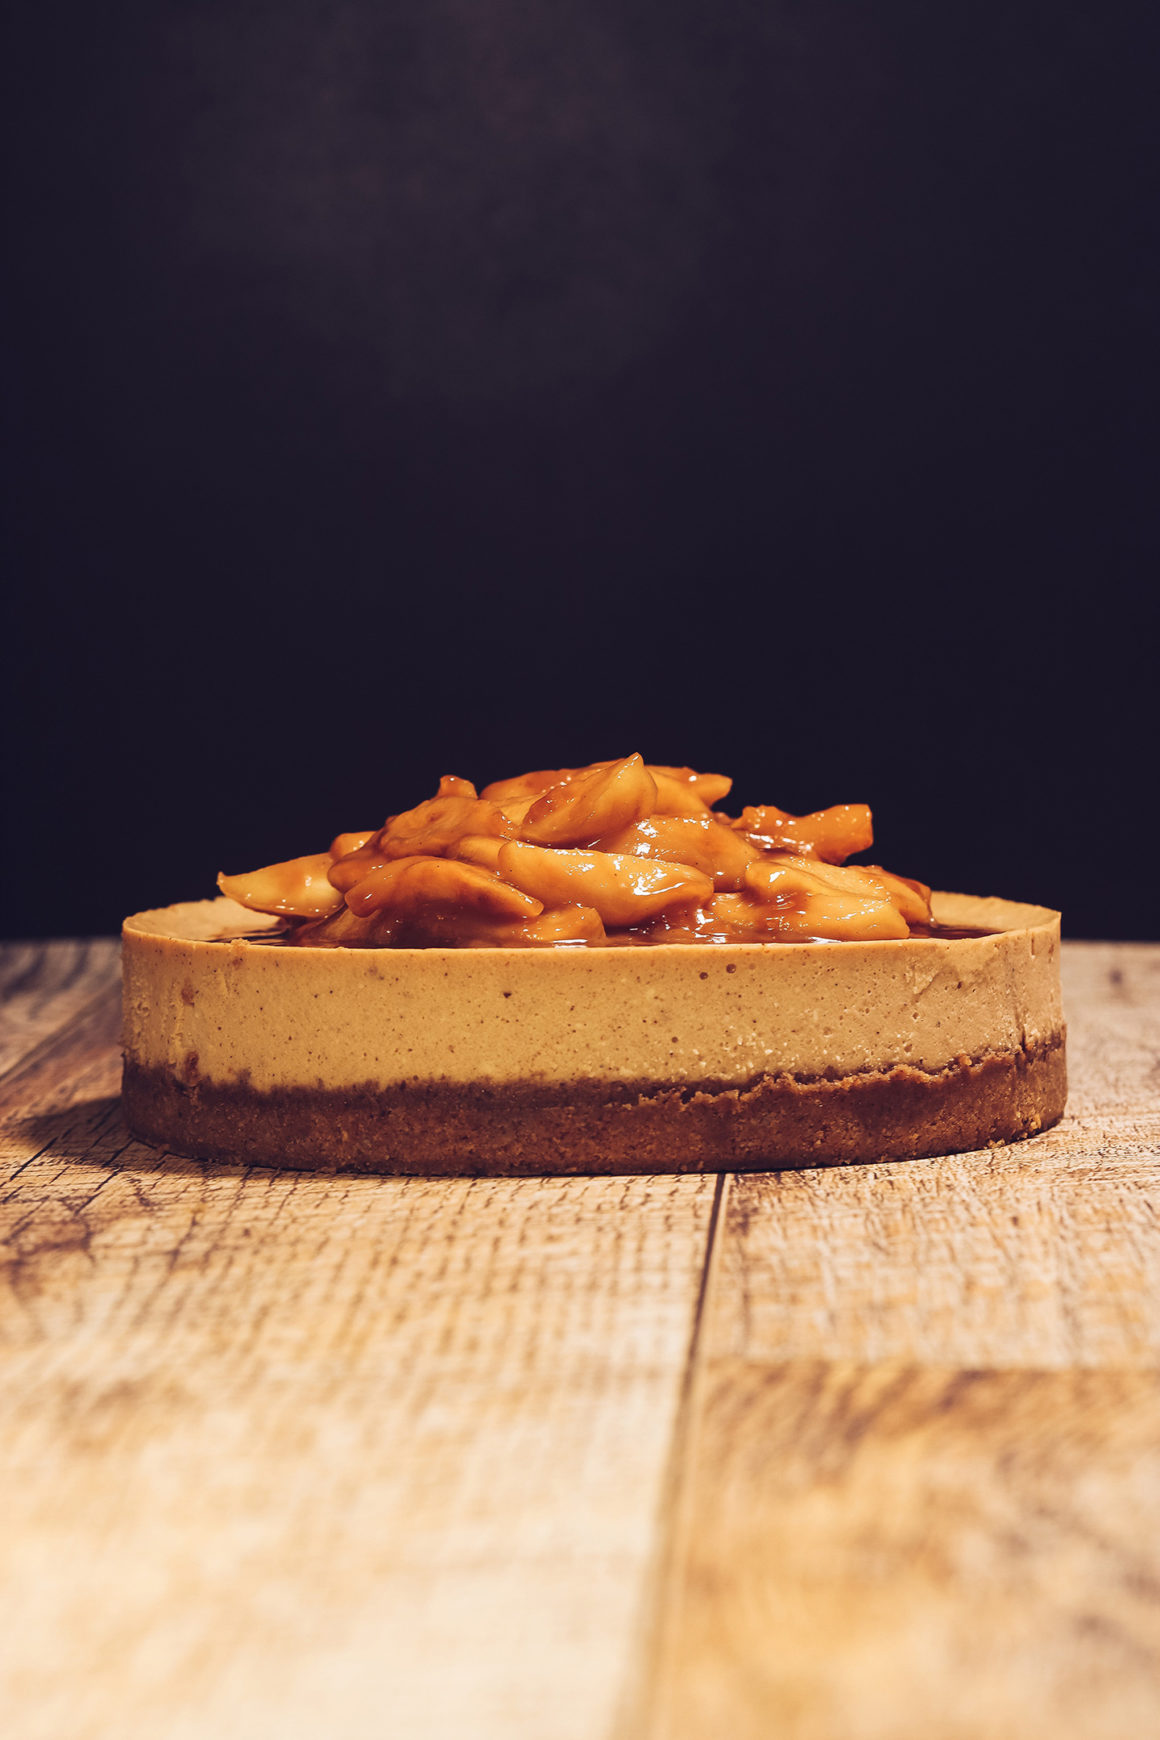 Cheesecake with Praline Crust and Caramelized Apples